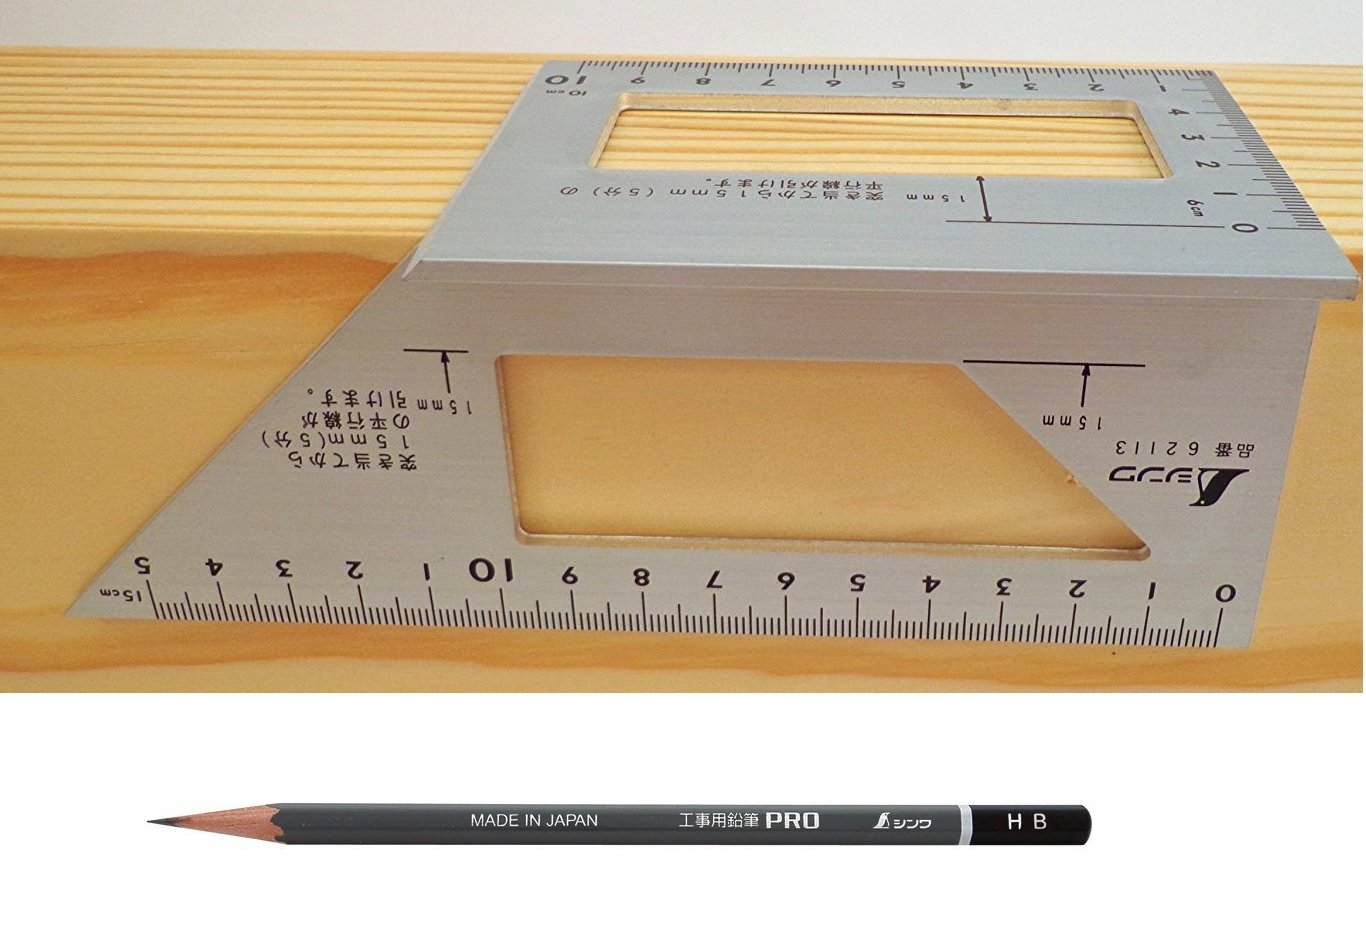 Shinwa Japanese Aluminum Saddle Layout Square w/ 45 degree and 90 degree Sides + Pencil for measurement work Pro HB 3 pcs 78519